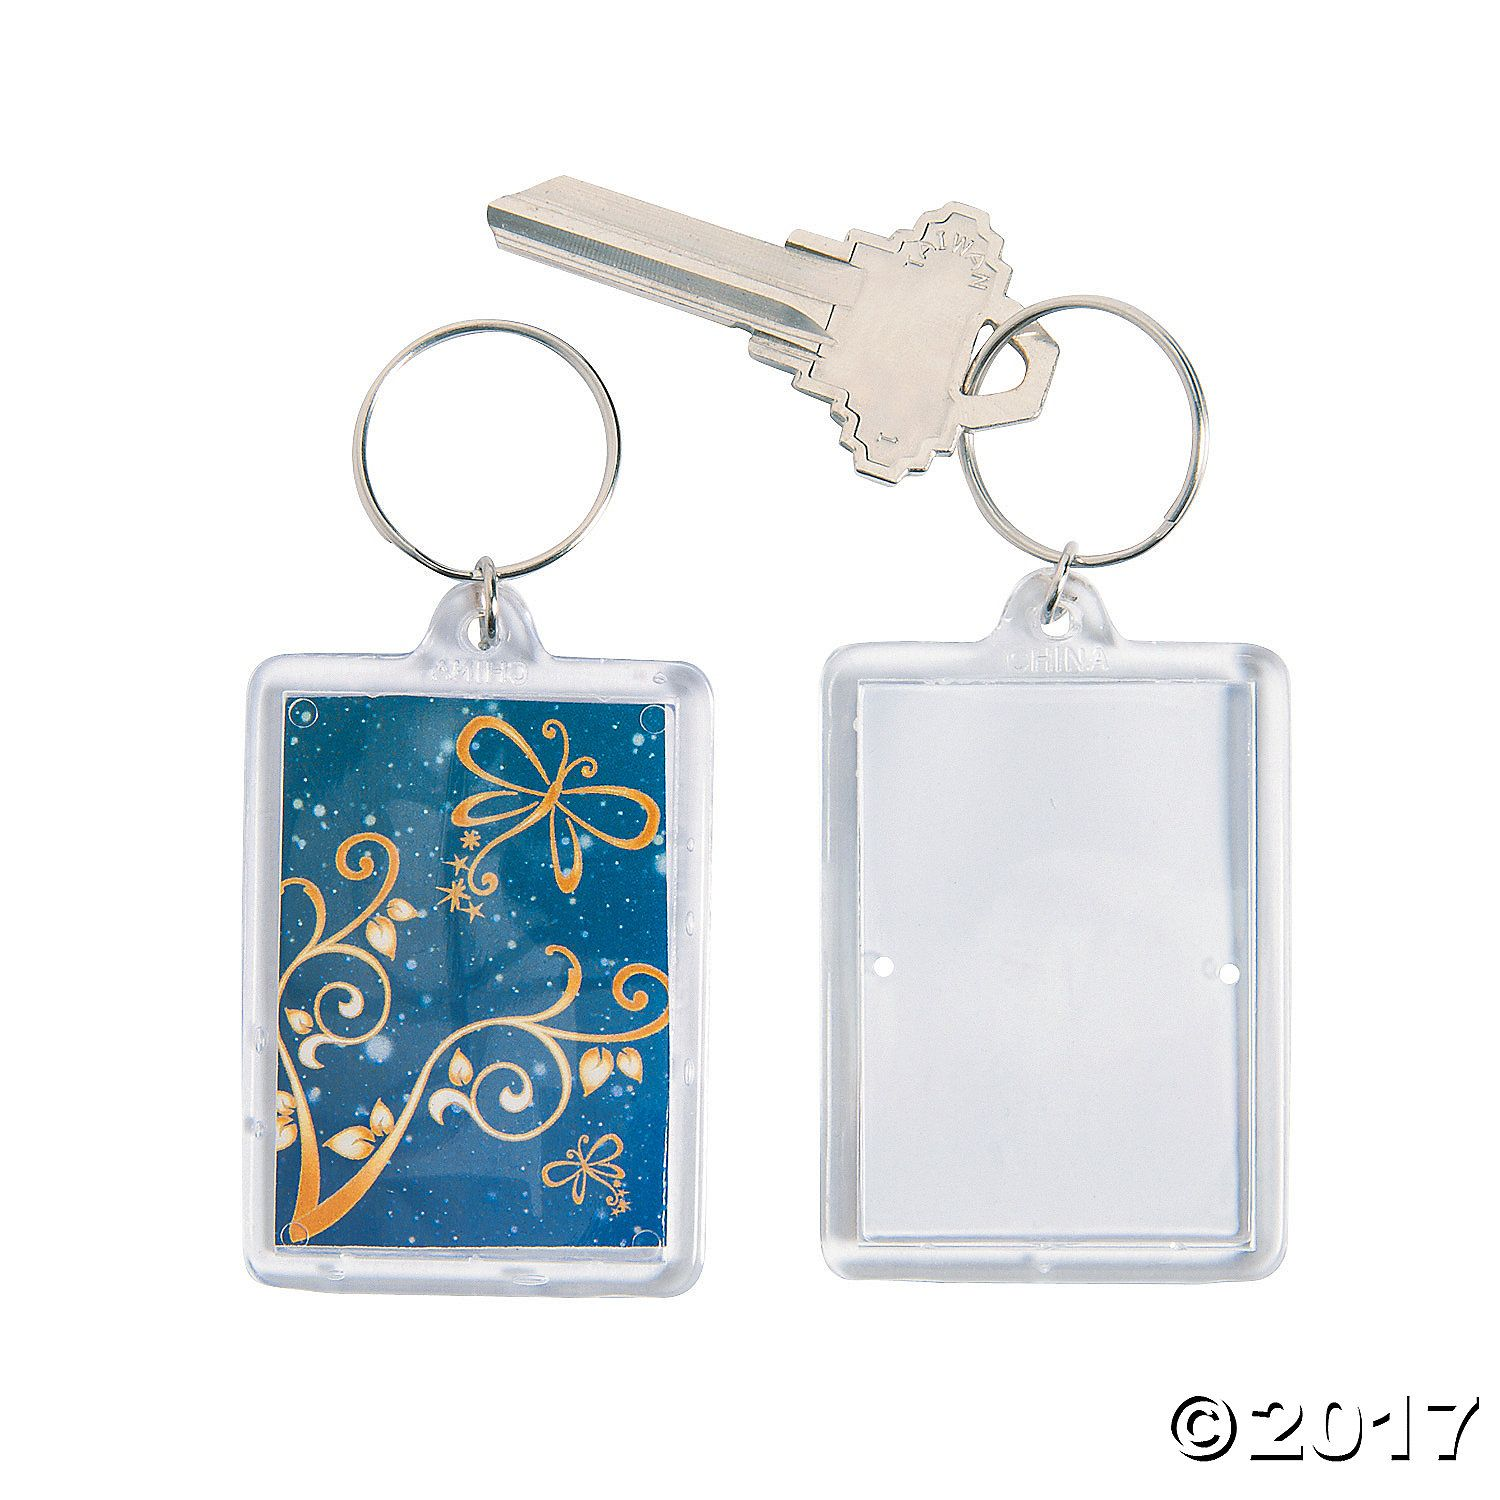 Enchantment theme picture frame keychains theme pictures enchantment theme picture frame keychains jeuxipadfo Image collections